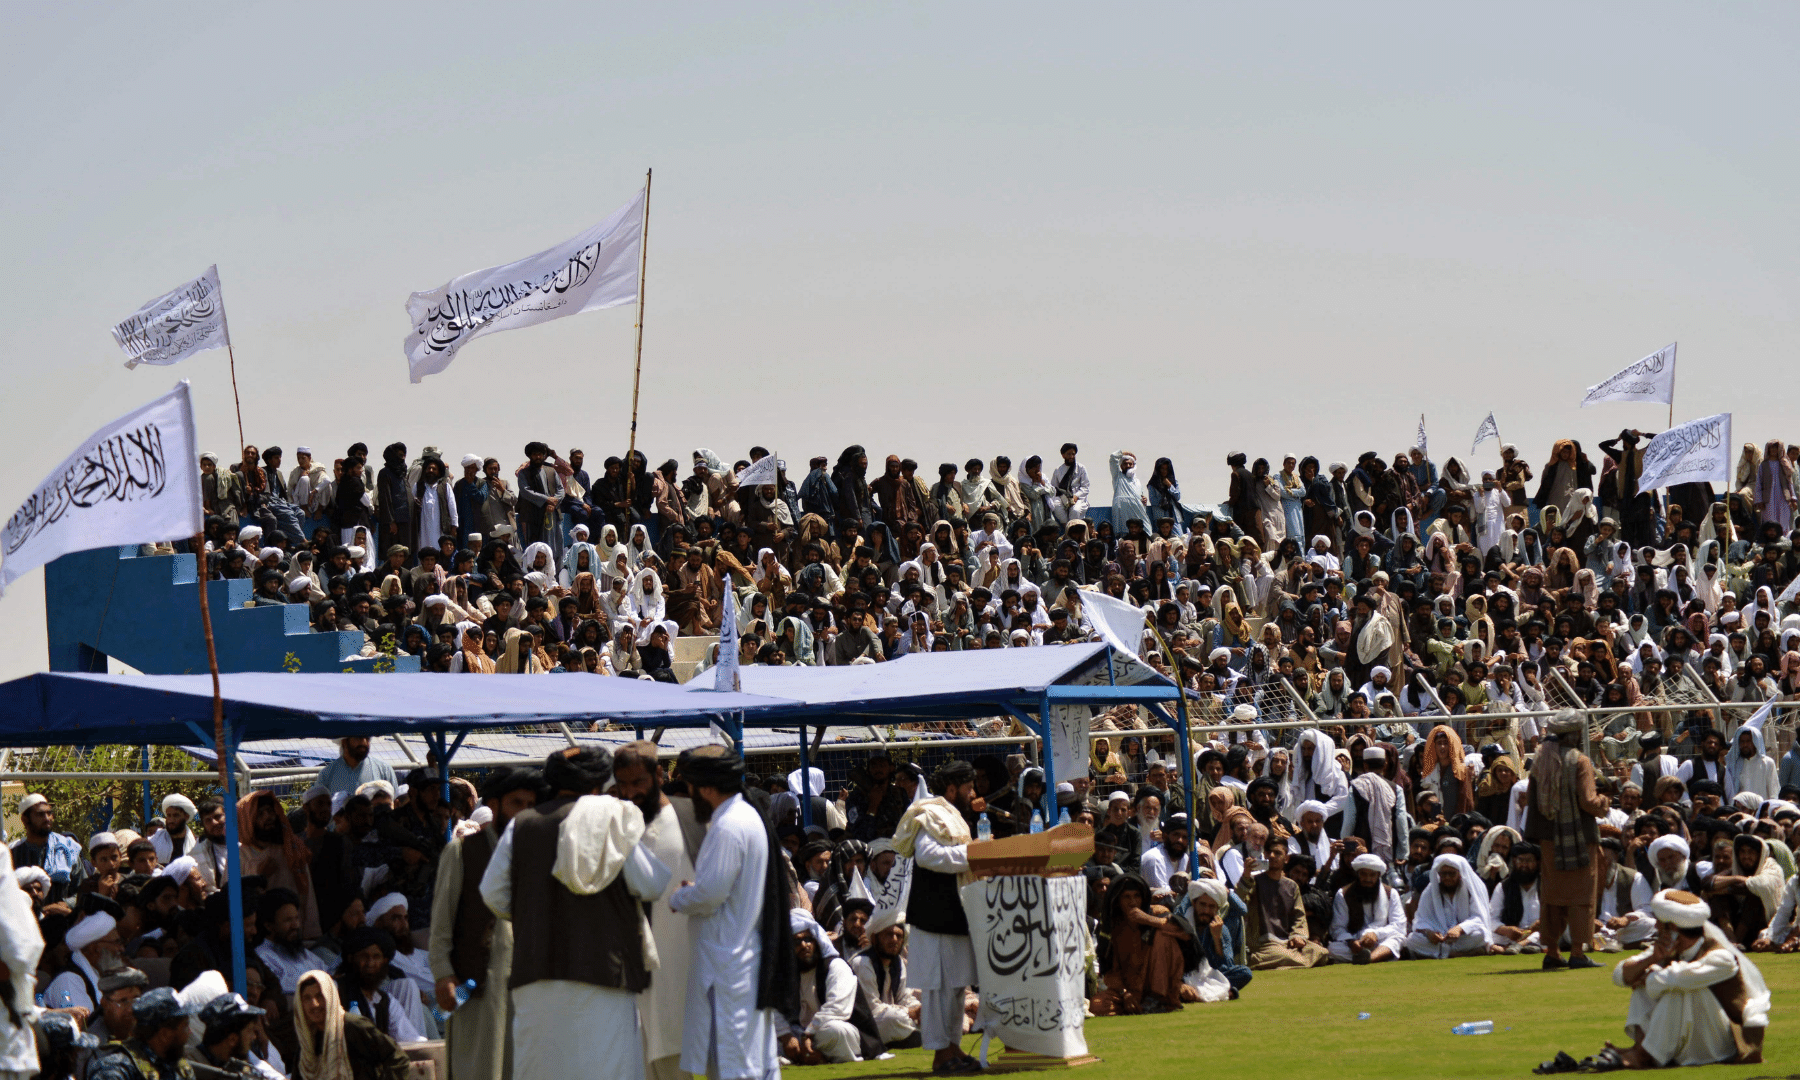 Taliban supporters gather to celebrate the US withdrawal of all its troops out of Afghanistan, in Kandahar, following the Taliban's military takeover of the country.